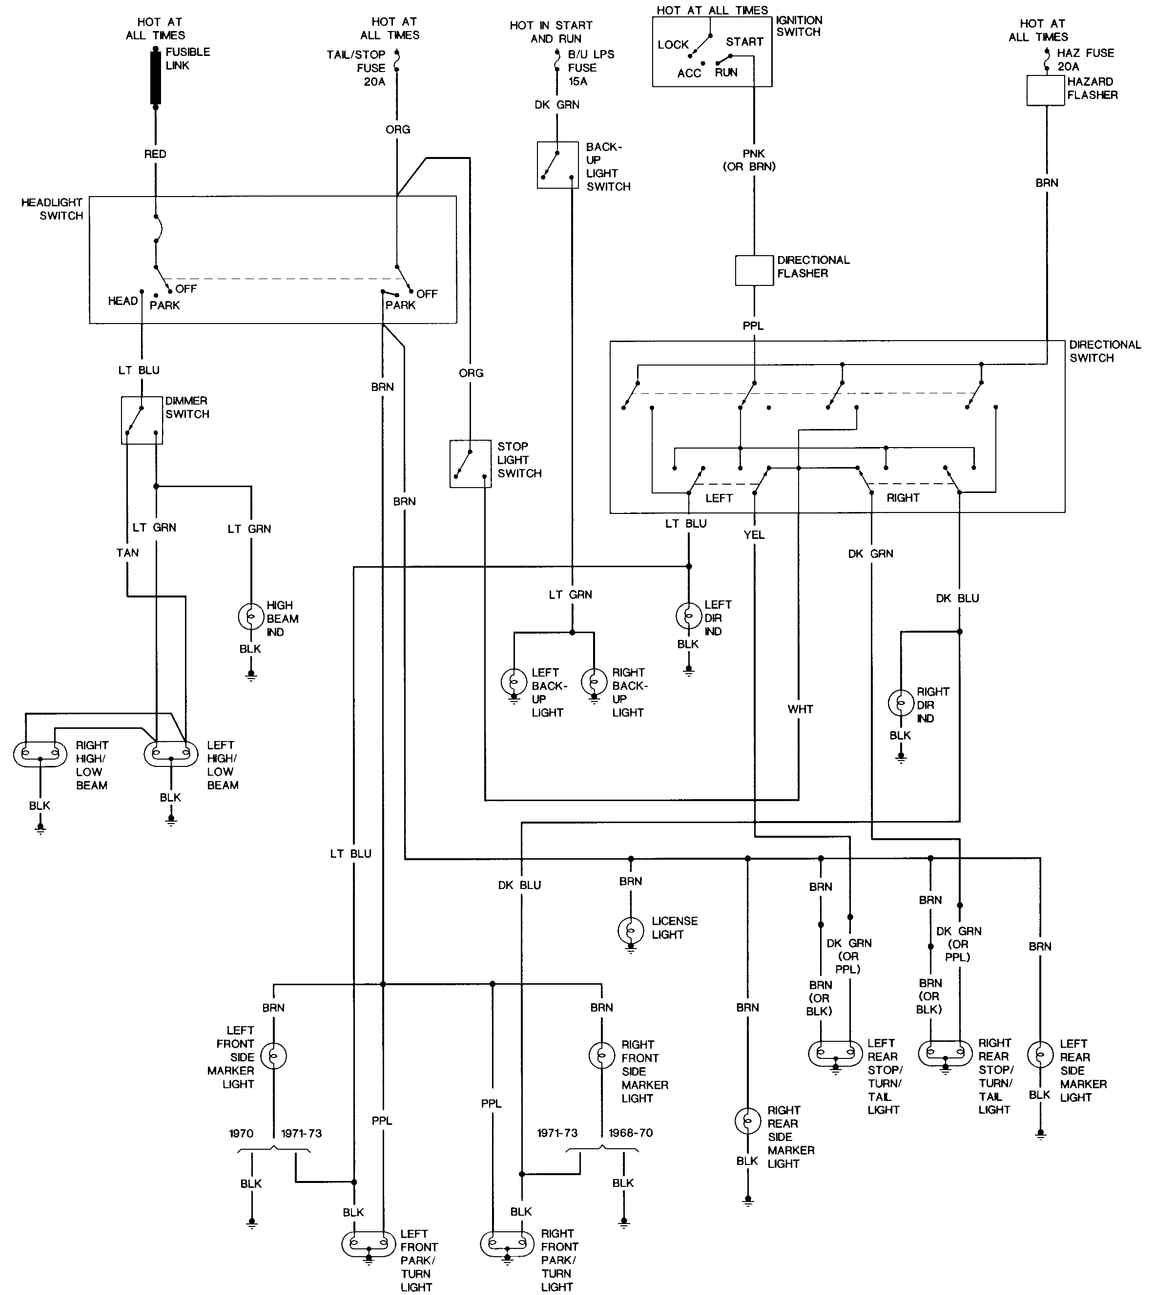 CH_9366] 3 Wire Switch Wiring Diagram 69 Mustang Free DiagramXtern Cali Rious Over Wigeg Mohammedshrine Librar Wiring 101